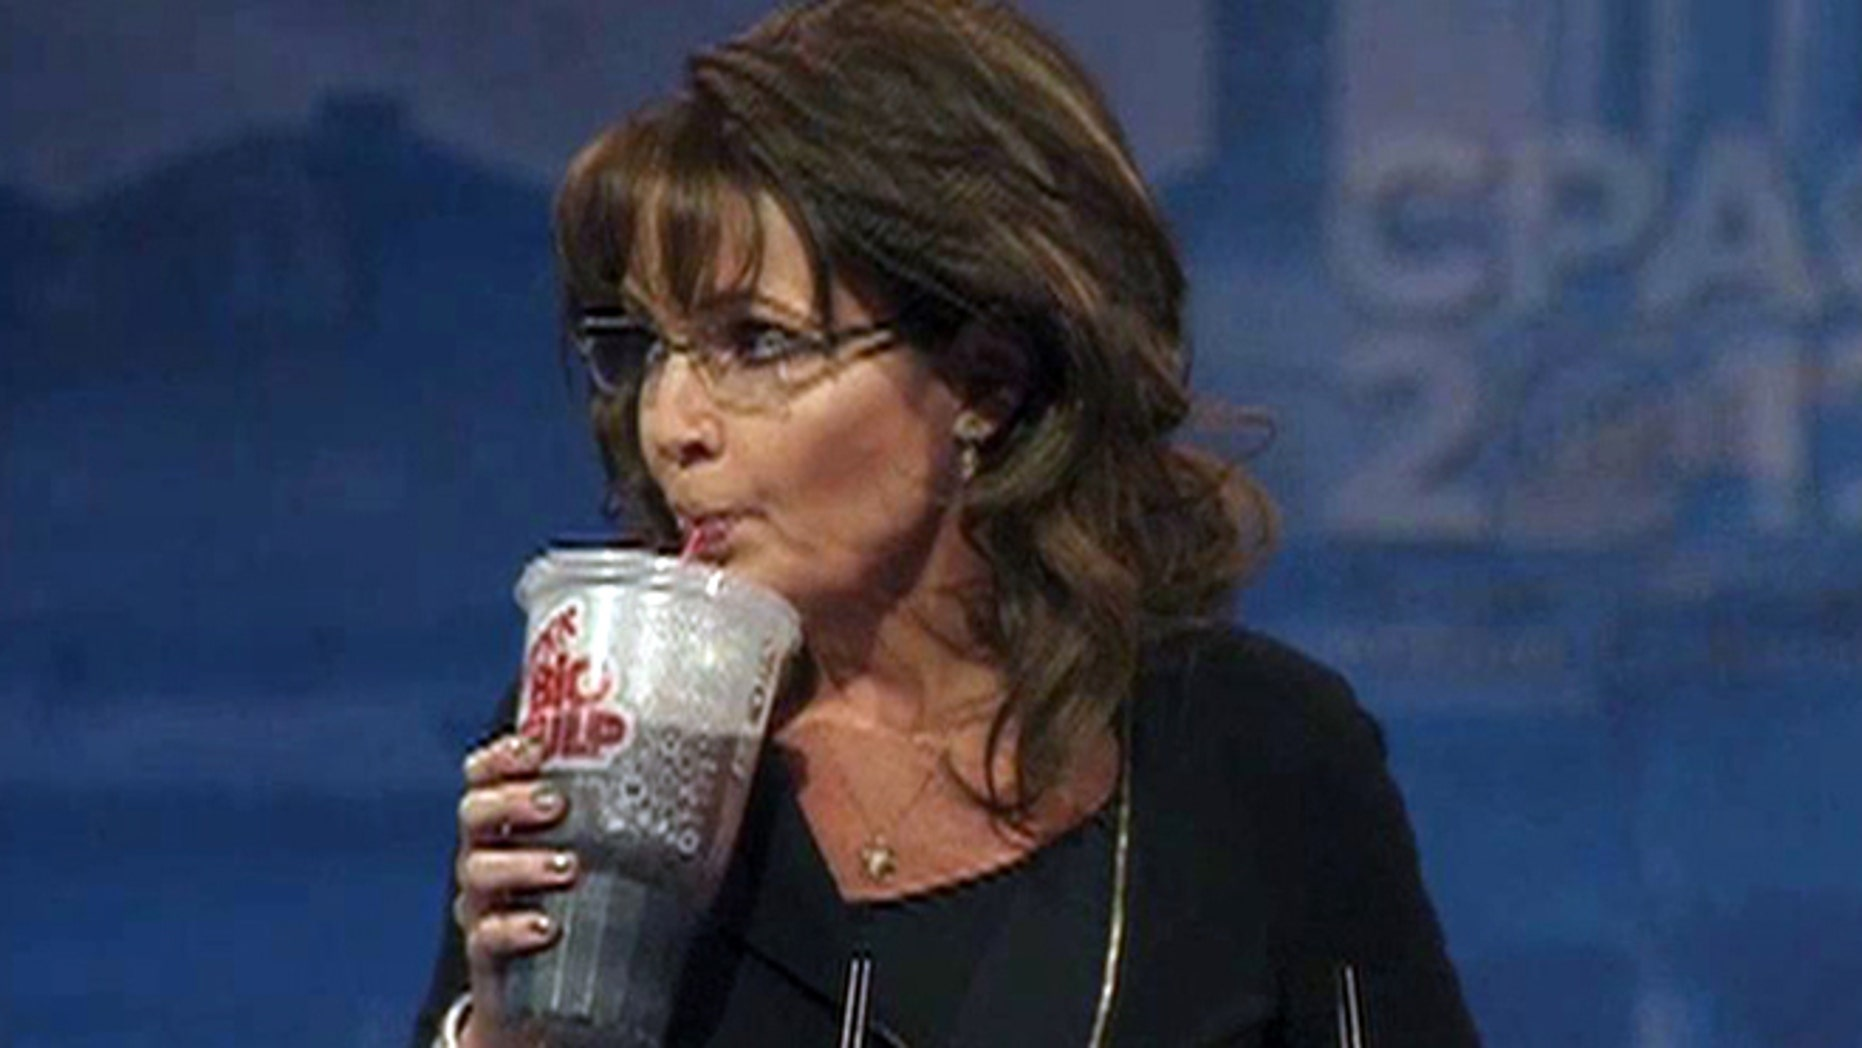 Sarah Palin takes a break from her CPAC speech to poke fun at Mayor Bloomberg's large soda ban.